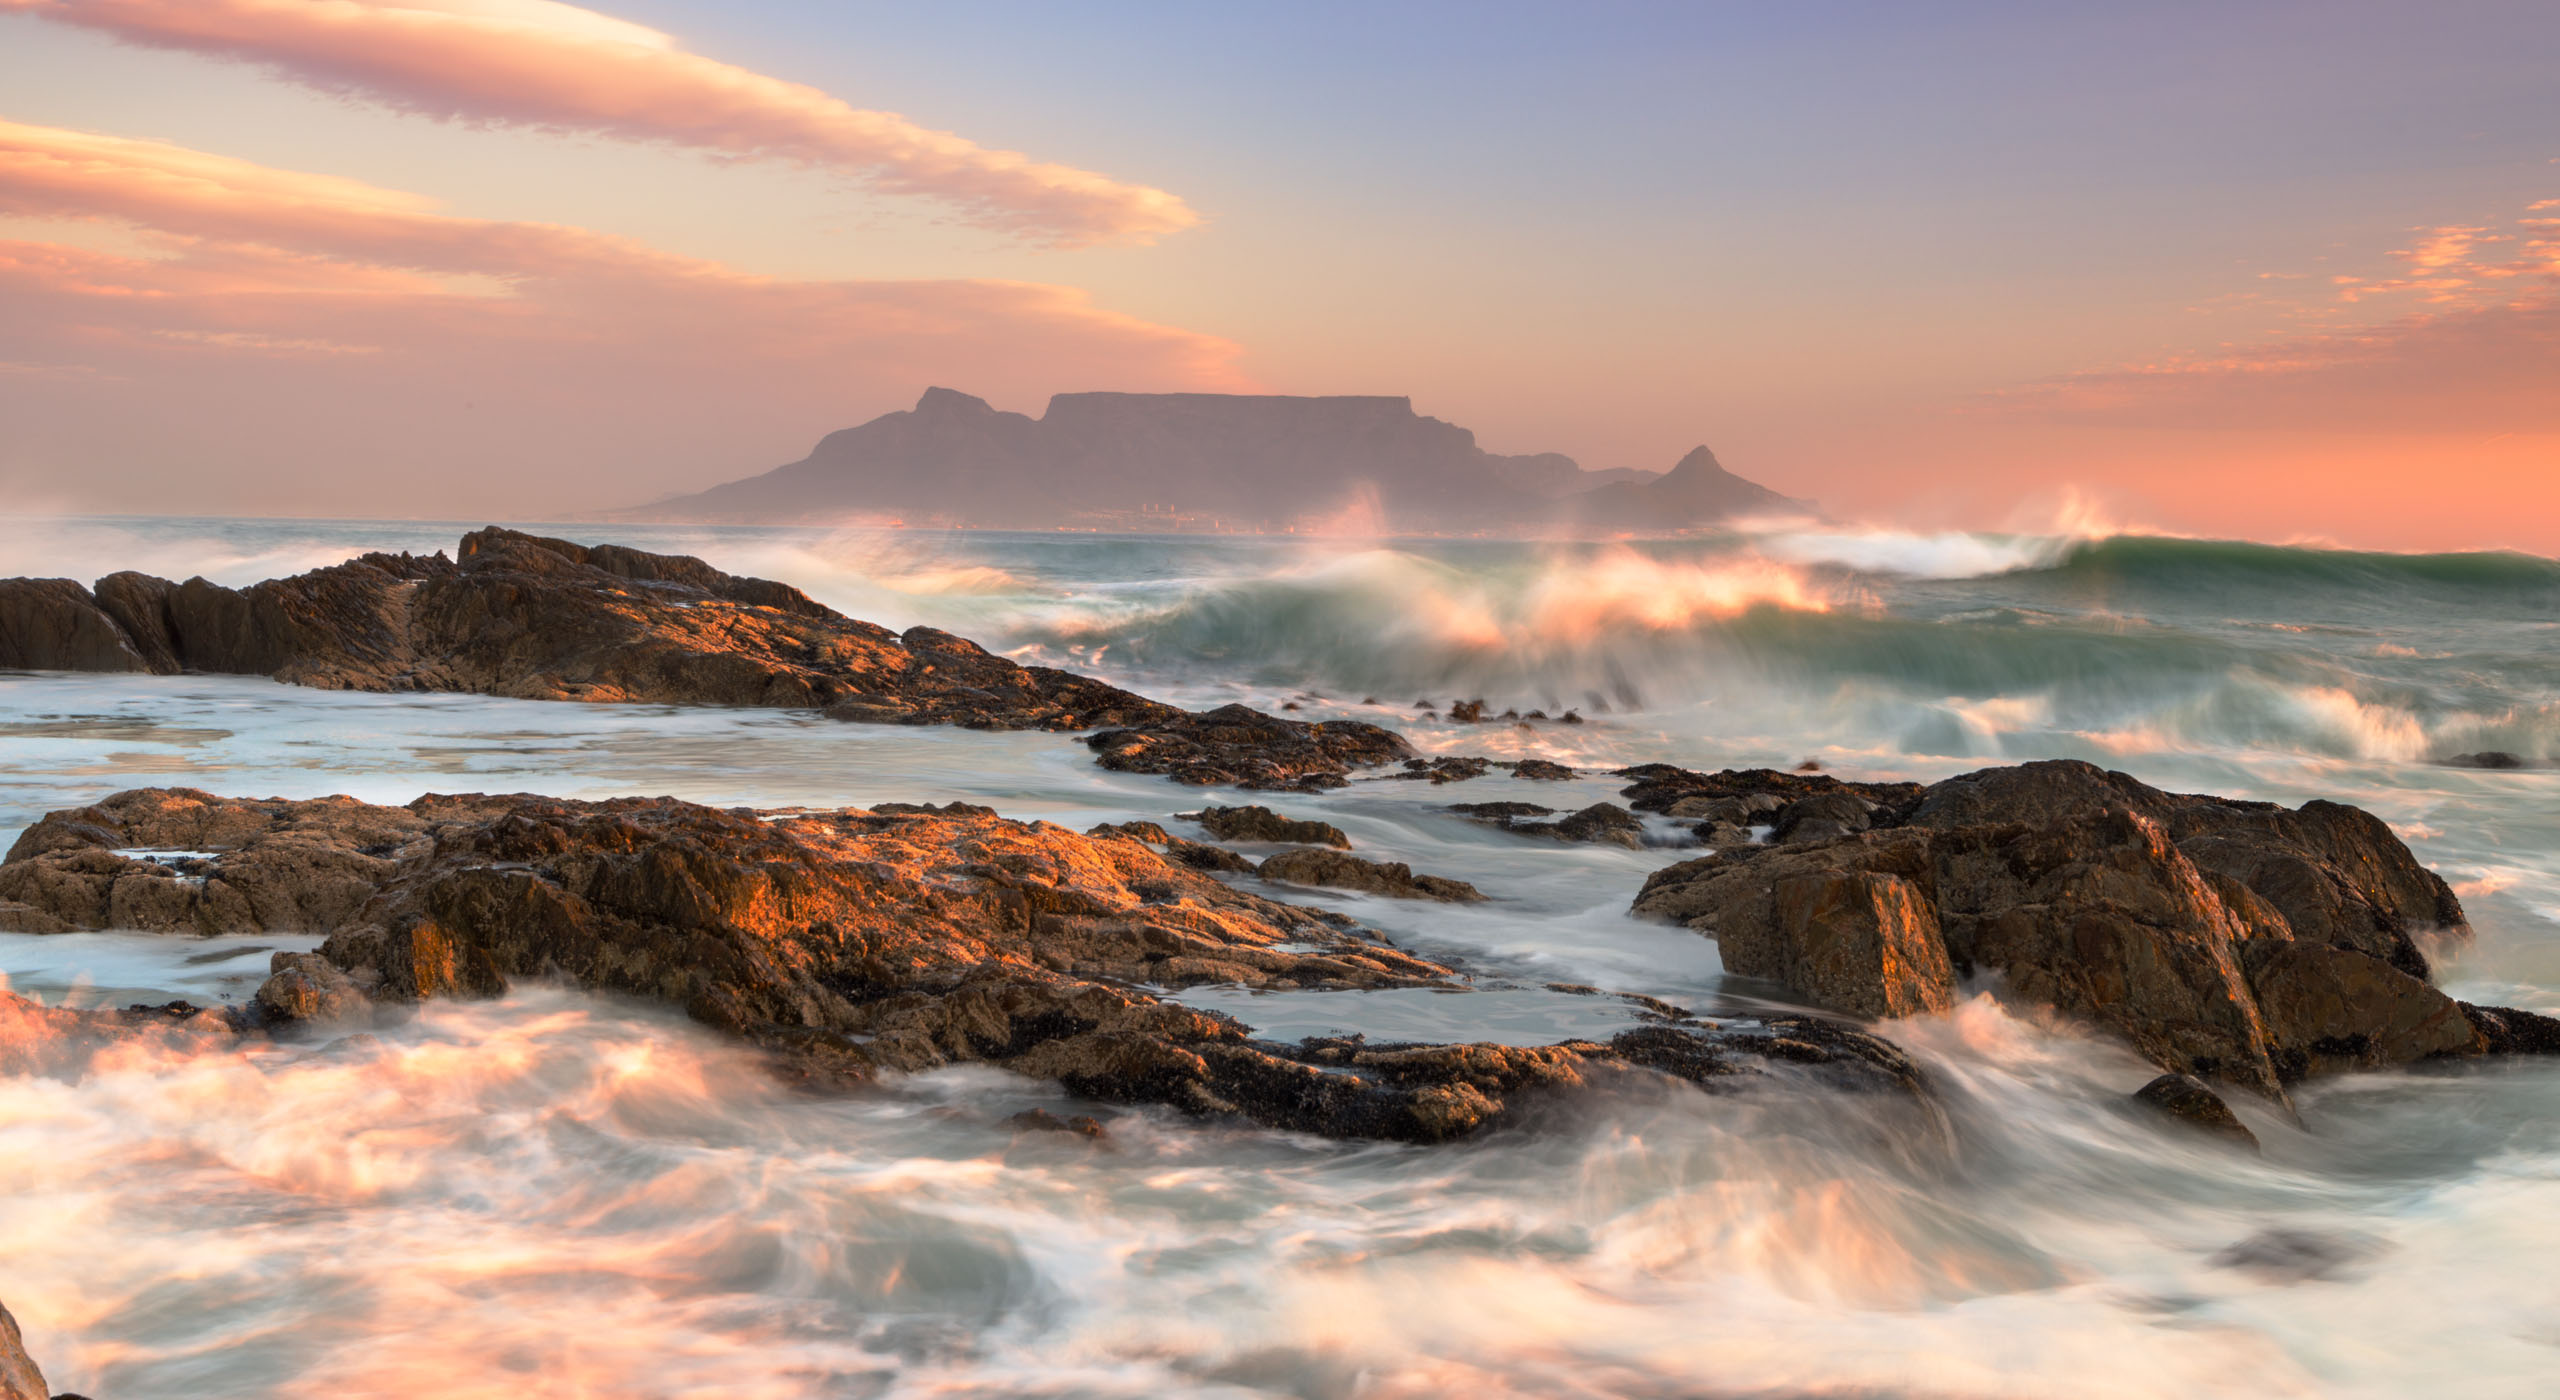 View to Table Mountain from oceanic coast